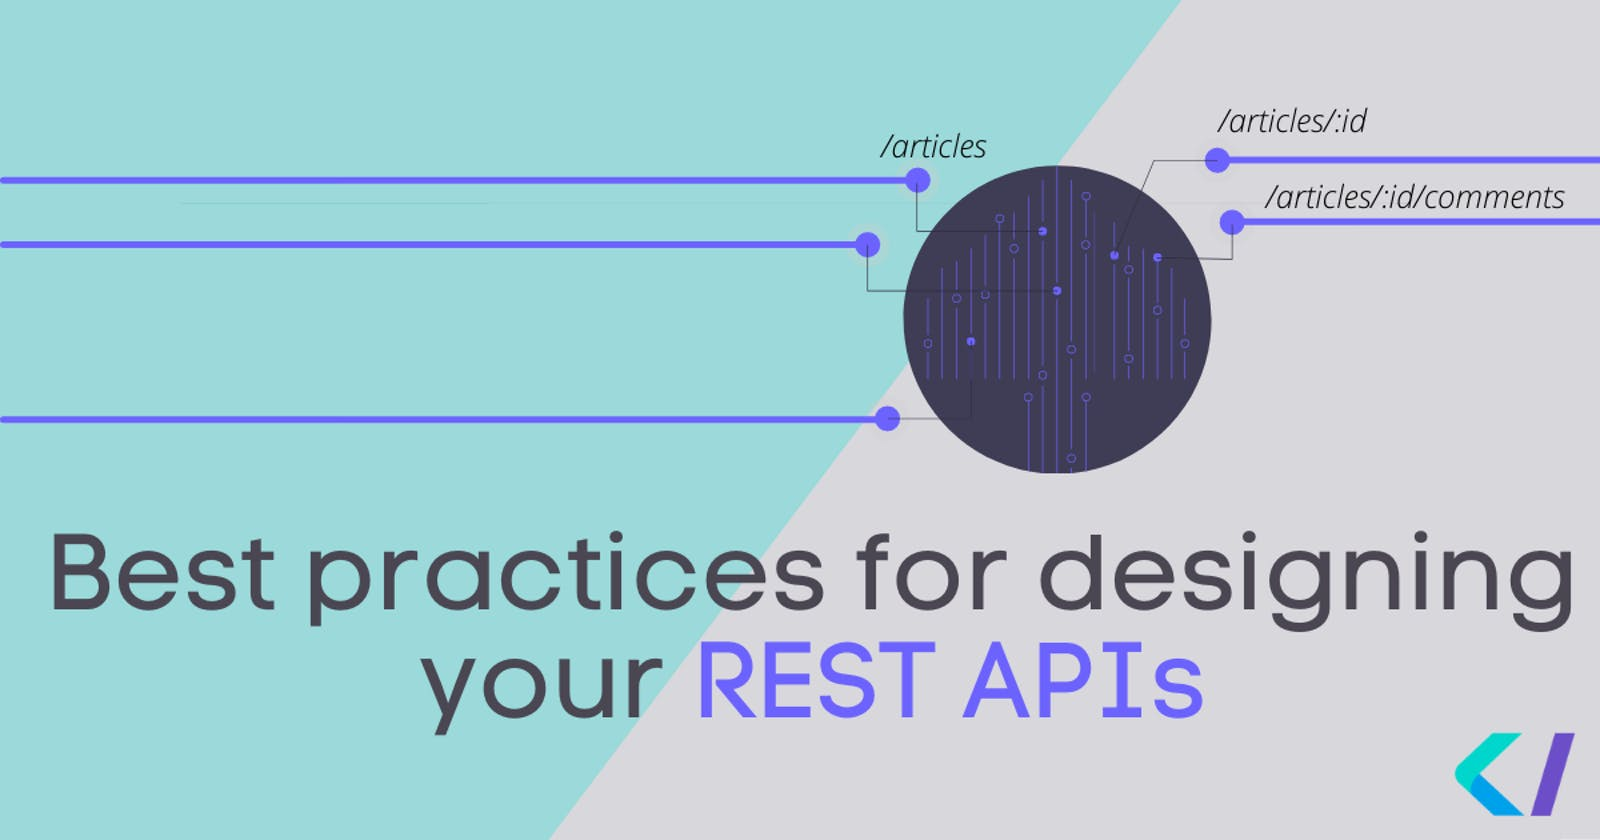 Best practices for designing your REST APIs